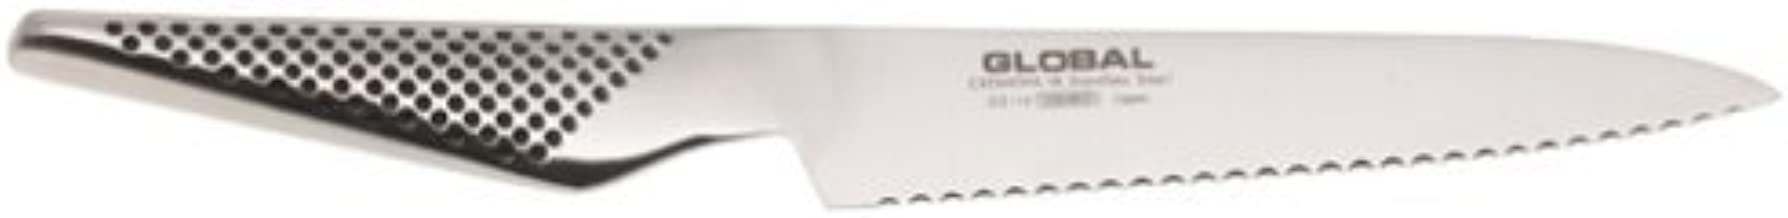 global serrated utility knife